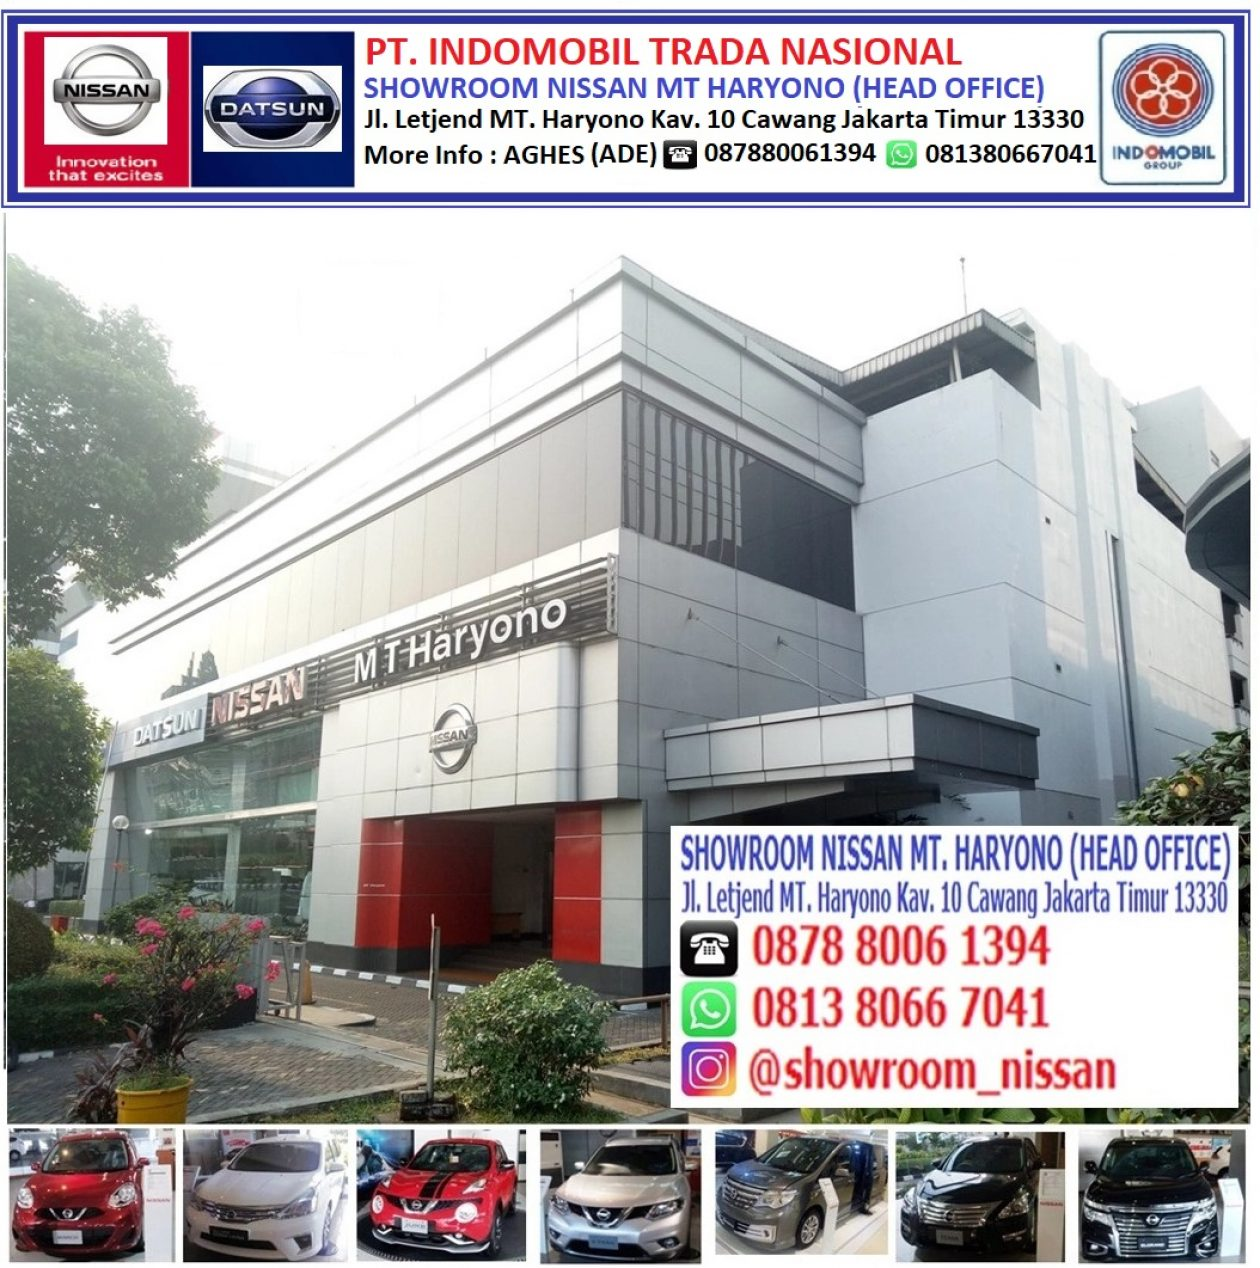 Nissan MT Haryono (Head Office) AGHES          ☎ 081380667041/087880061394